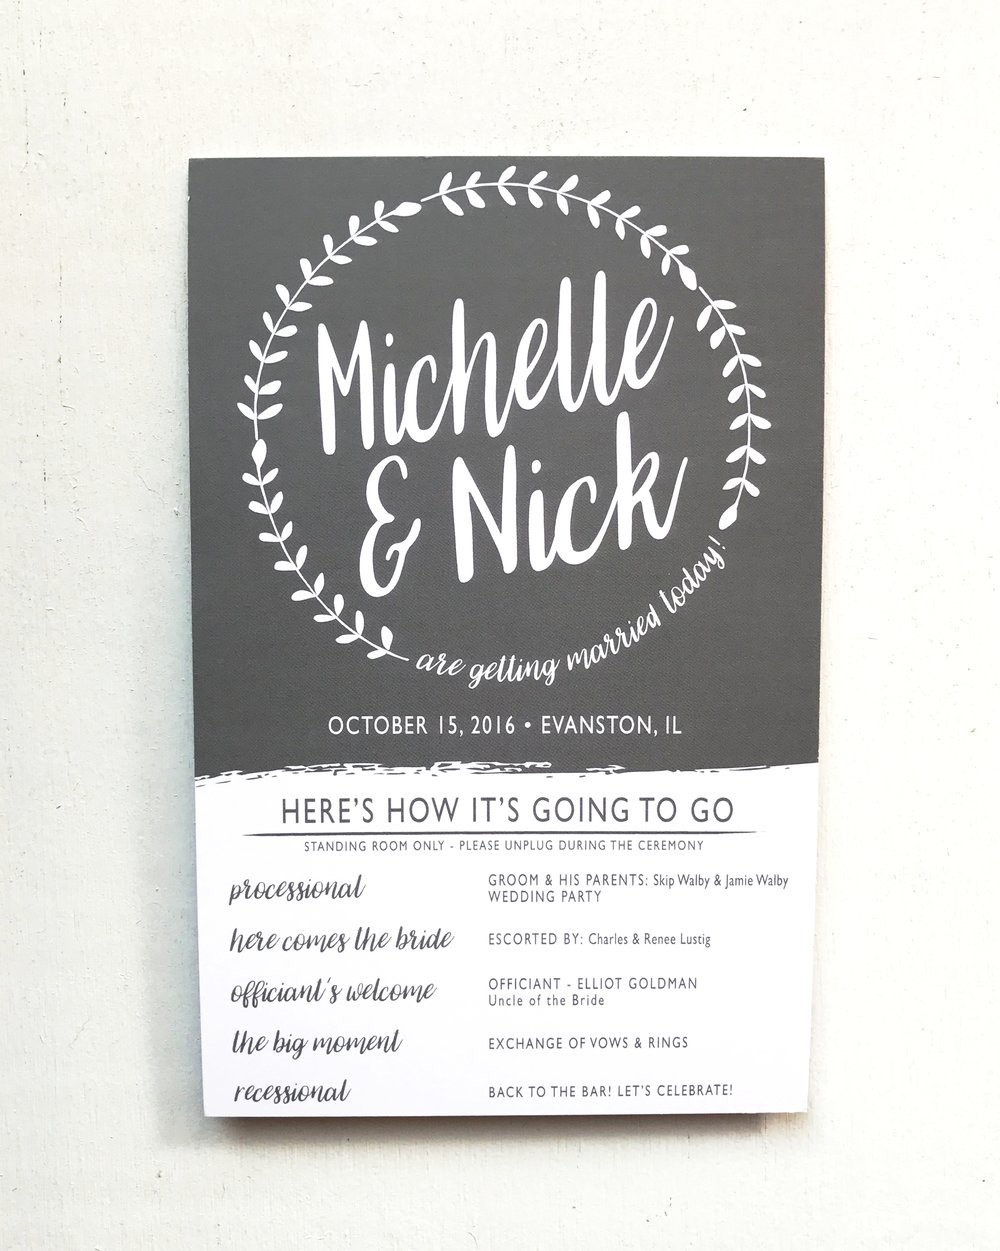 Industrial Chic Wedding Programs for Ceremony with Ferns and Handwritten Calligraphy Font with Charcoal Digital Ink by Ashley Parker Creative